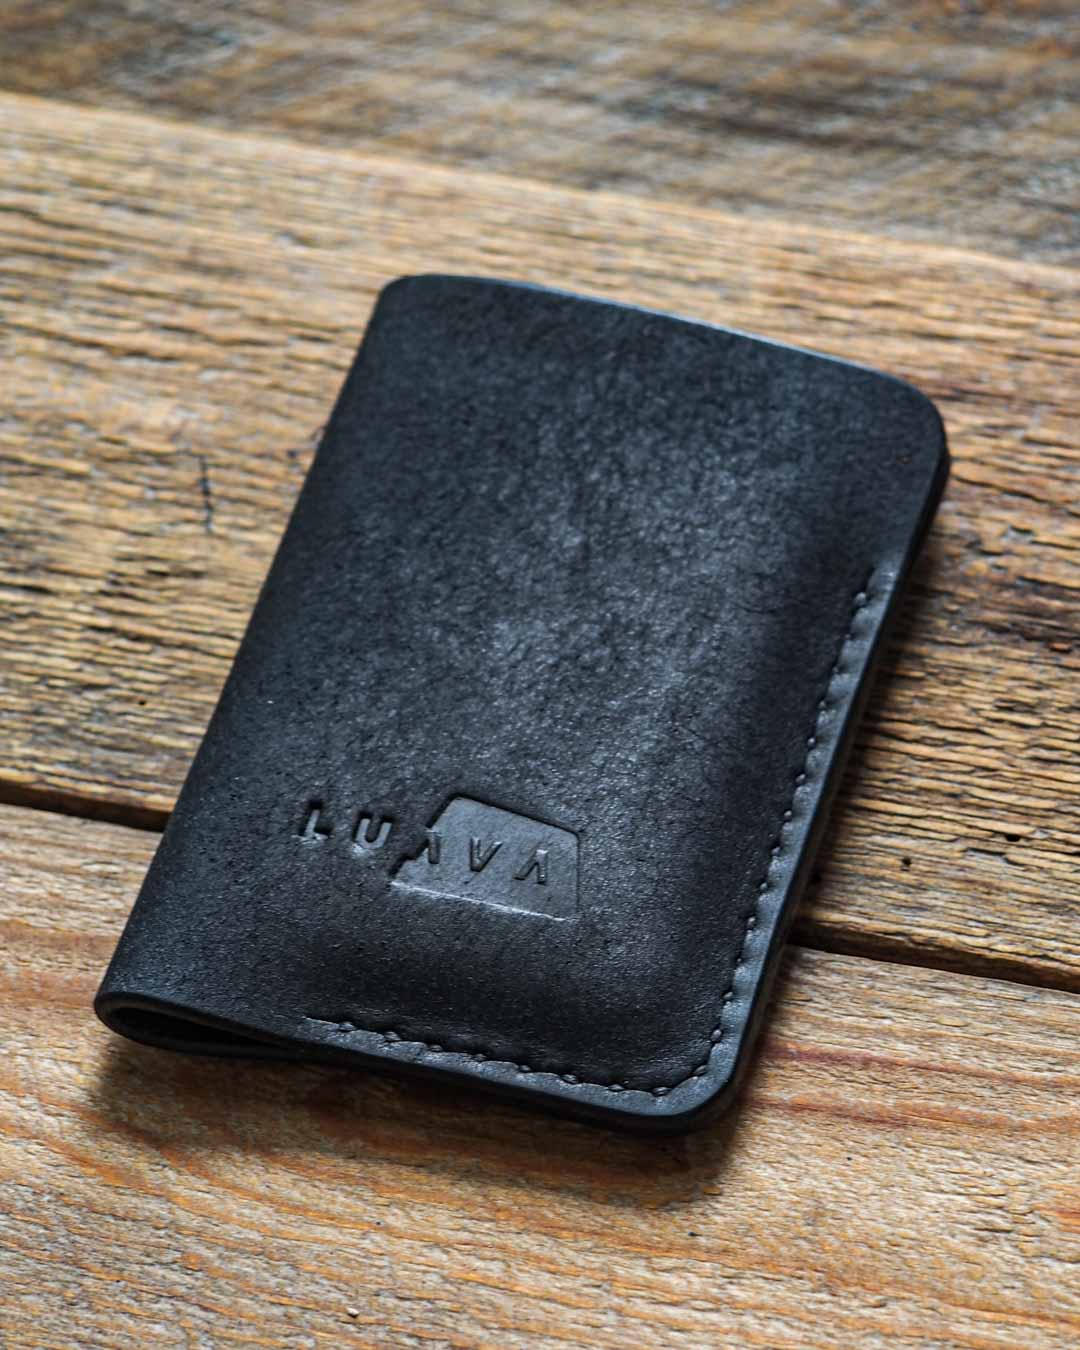 Luava handcrafted leather card holder pueblo wax